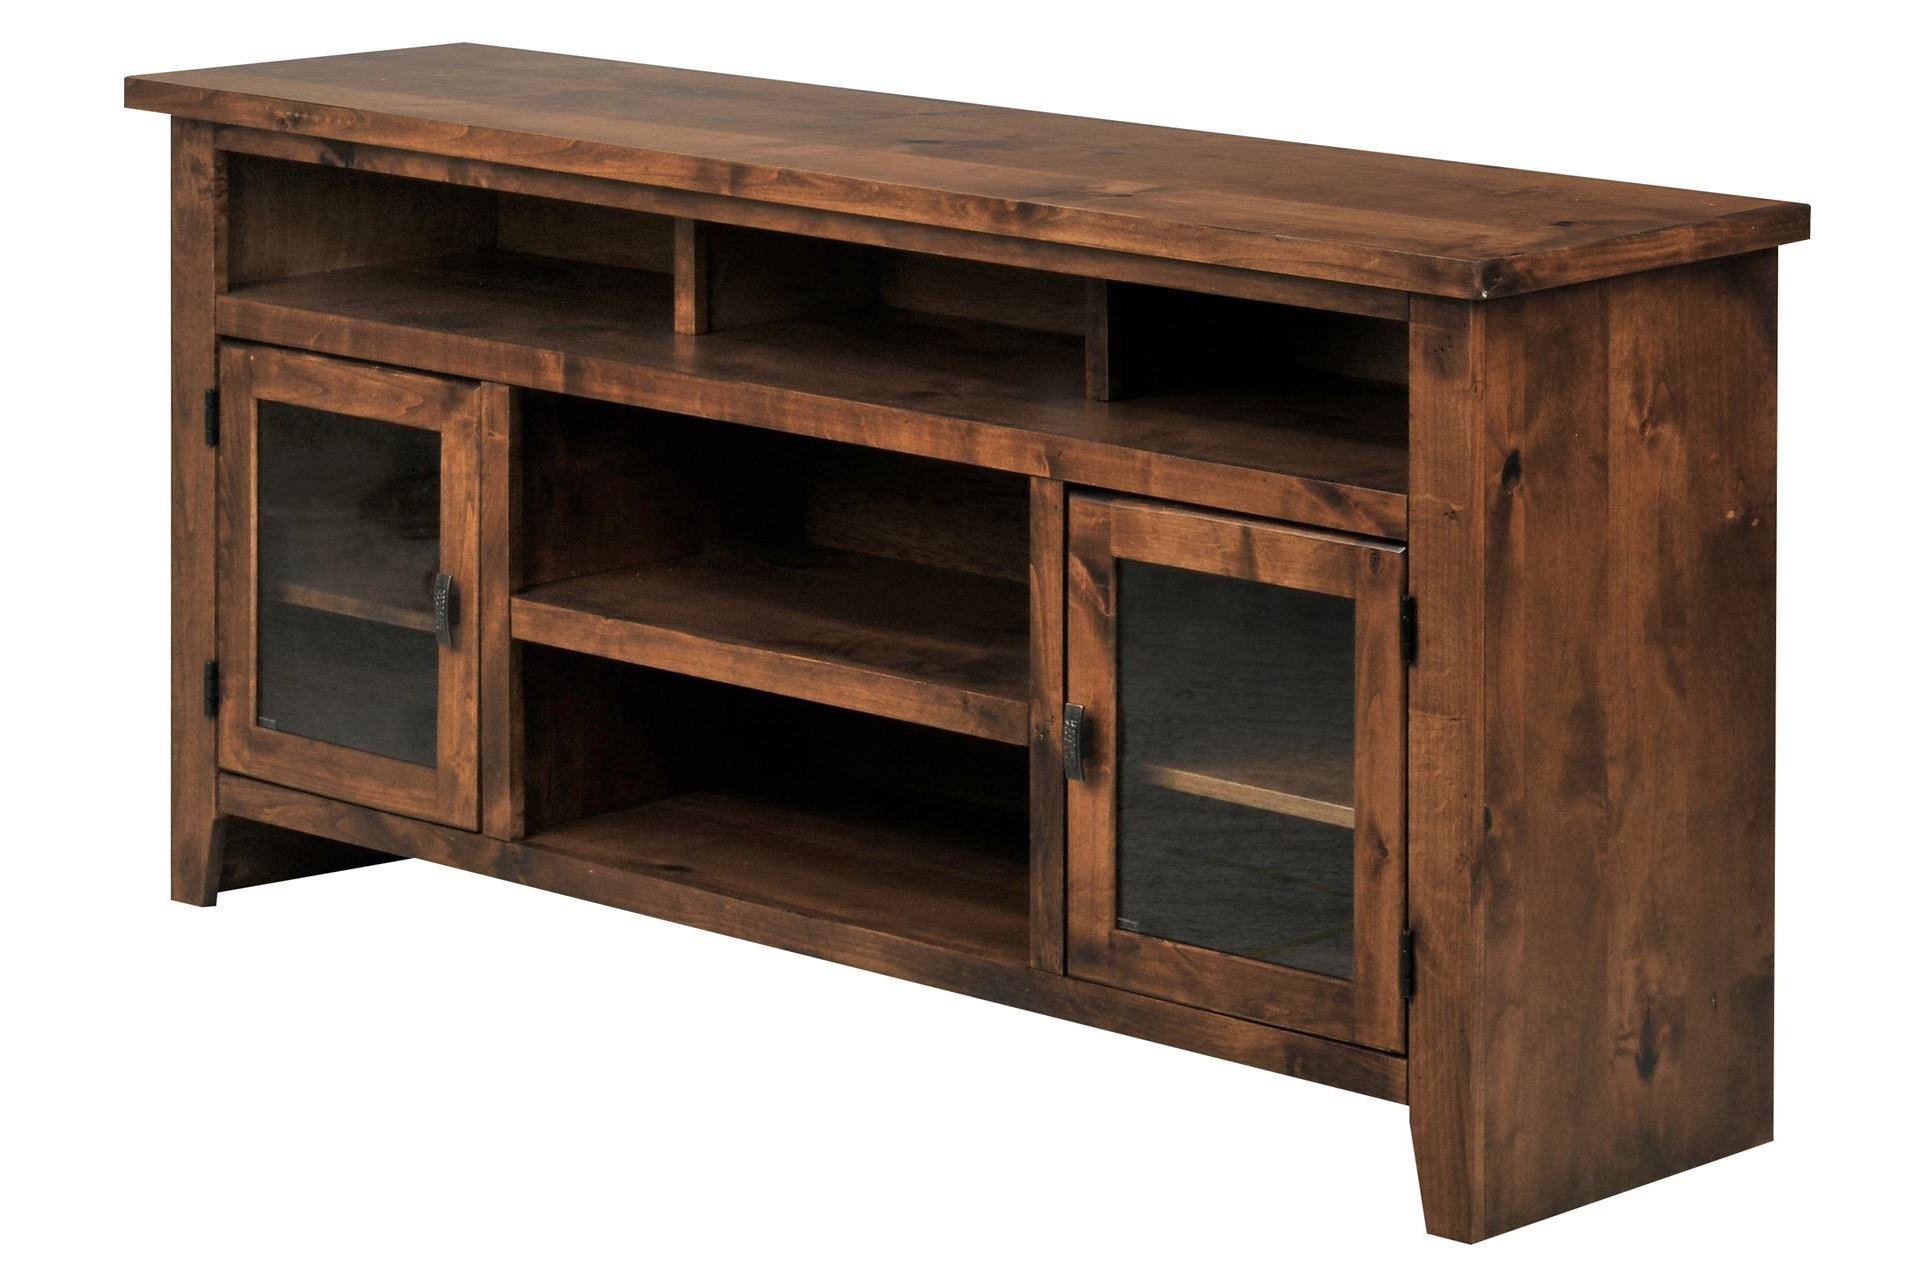 65 Inch Tv Stand, Trent, Fruitwood | 65 Inch Tv Stand, Tv Stands And Tvs Throughout Sinclair Grey 68 Inch Tv Stands (View 9 of 20)